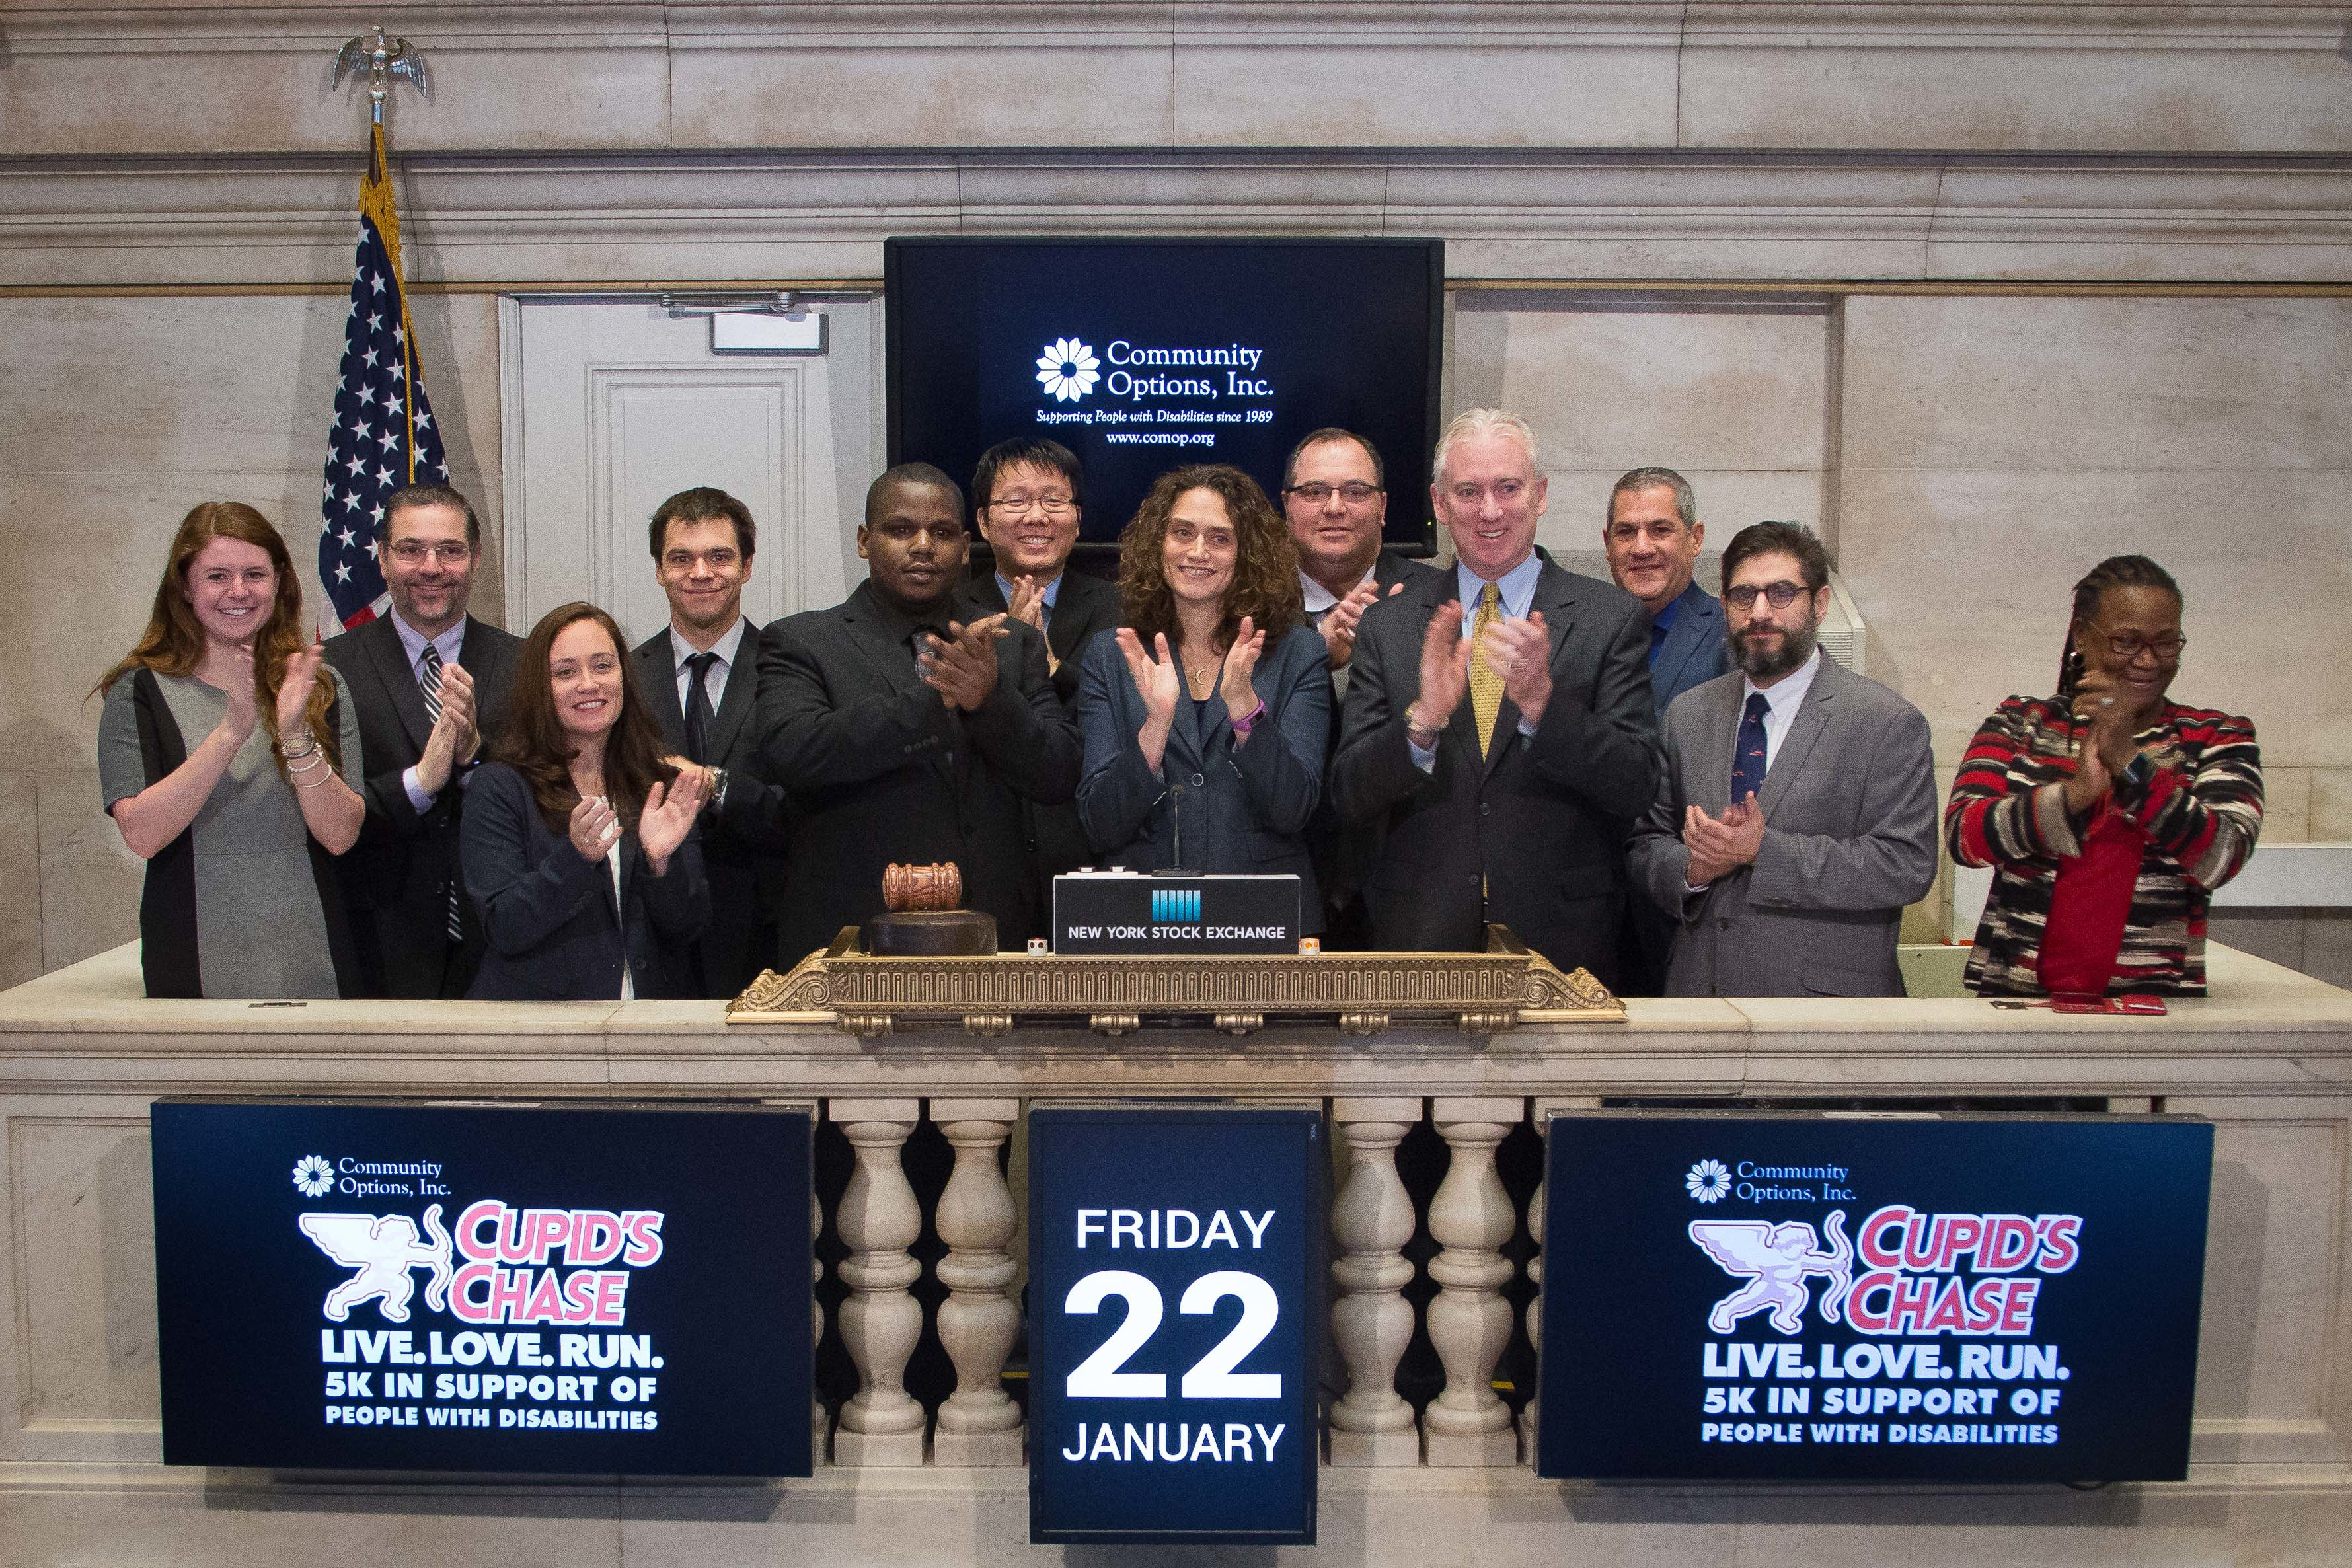 Robert Stack, President of Community Options, selected Roy King to ring the bell at the New York Stock Exchange, Friday January 22, 2016